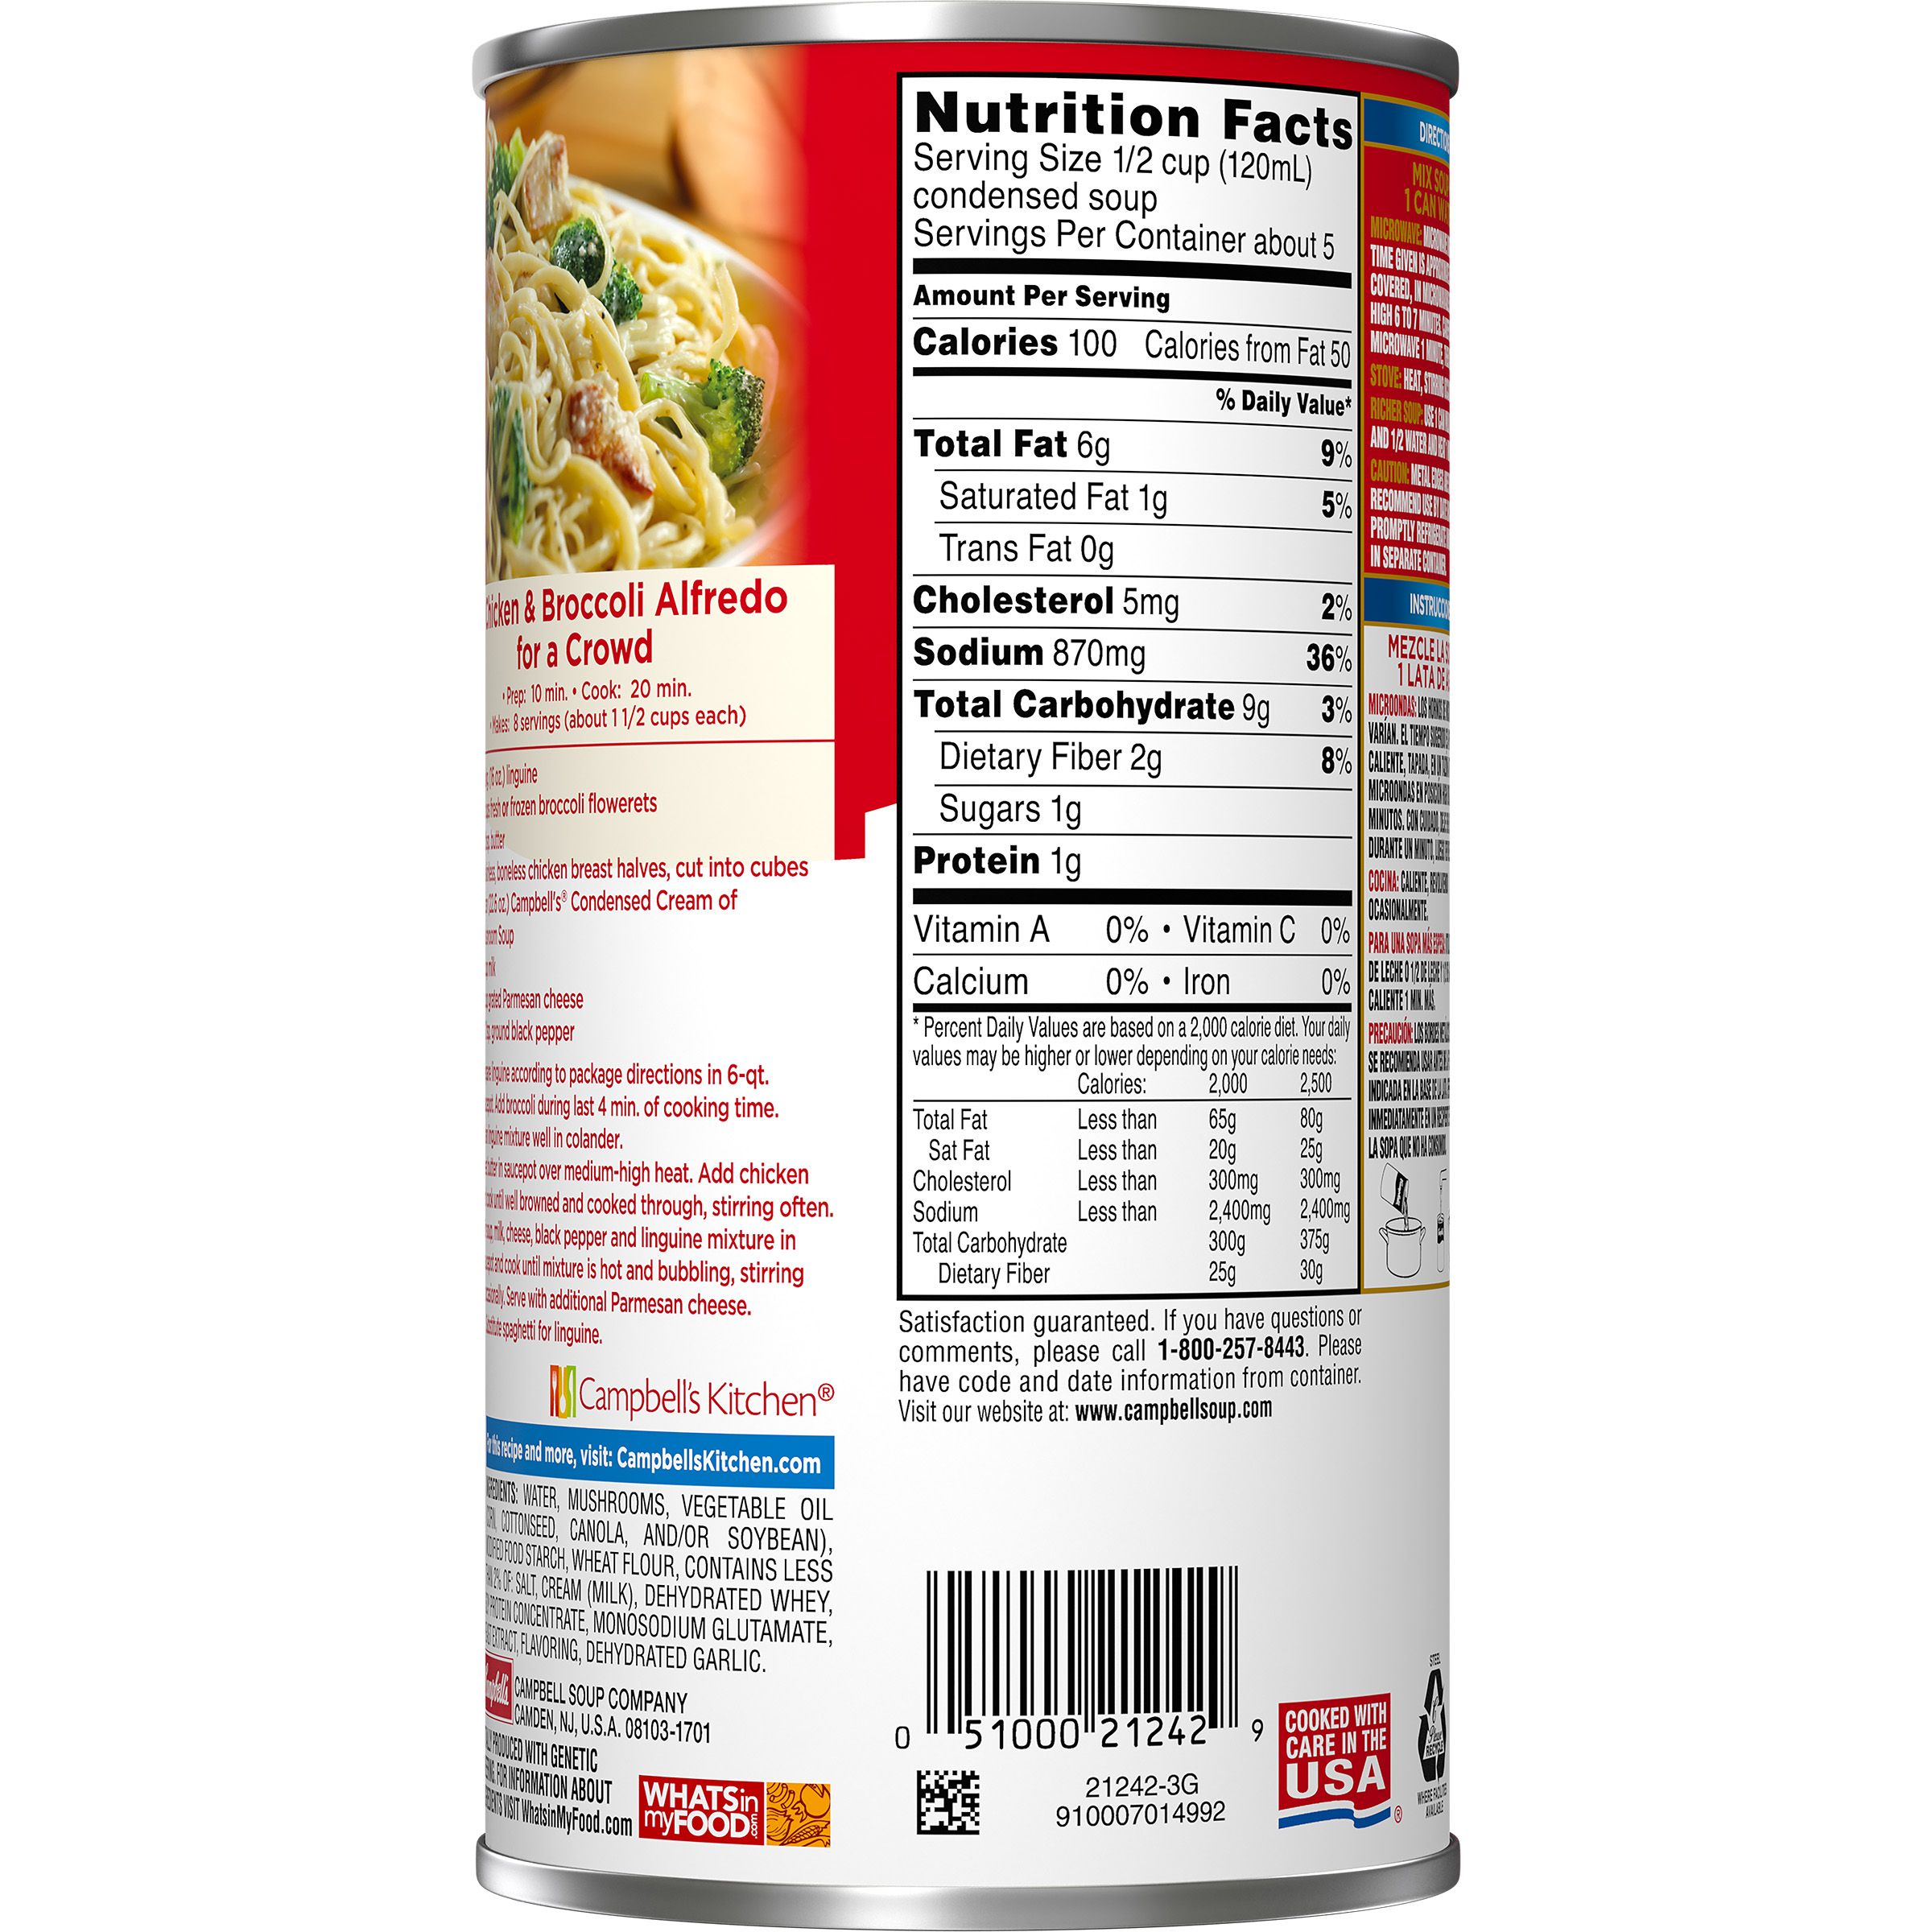 Exceptional Campbellu0027s Condensed Family Size Cream Of Mushroom Soup, 22.6 Oz.   Walmart. Com